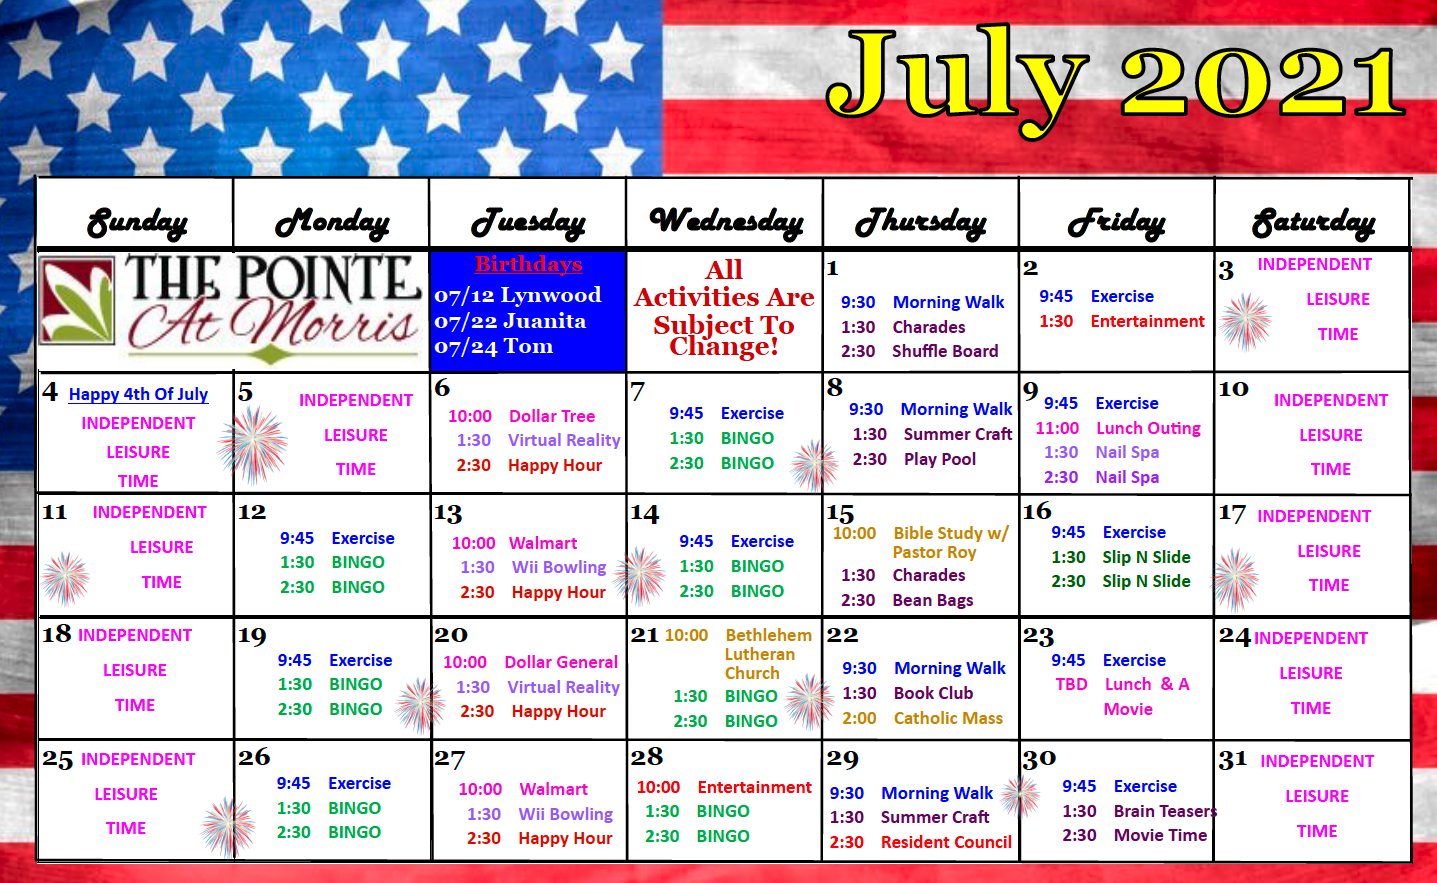 July 2021 Activity Calendar For The Pointe At Morris